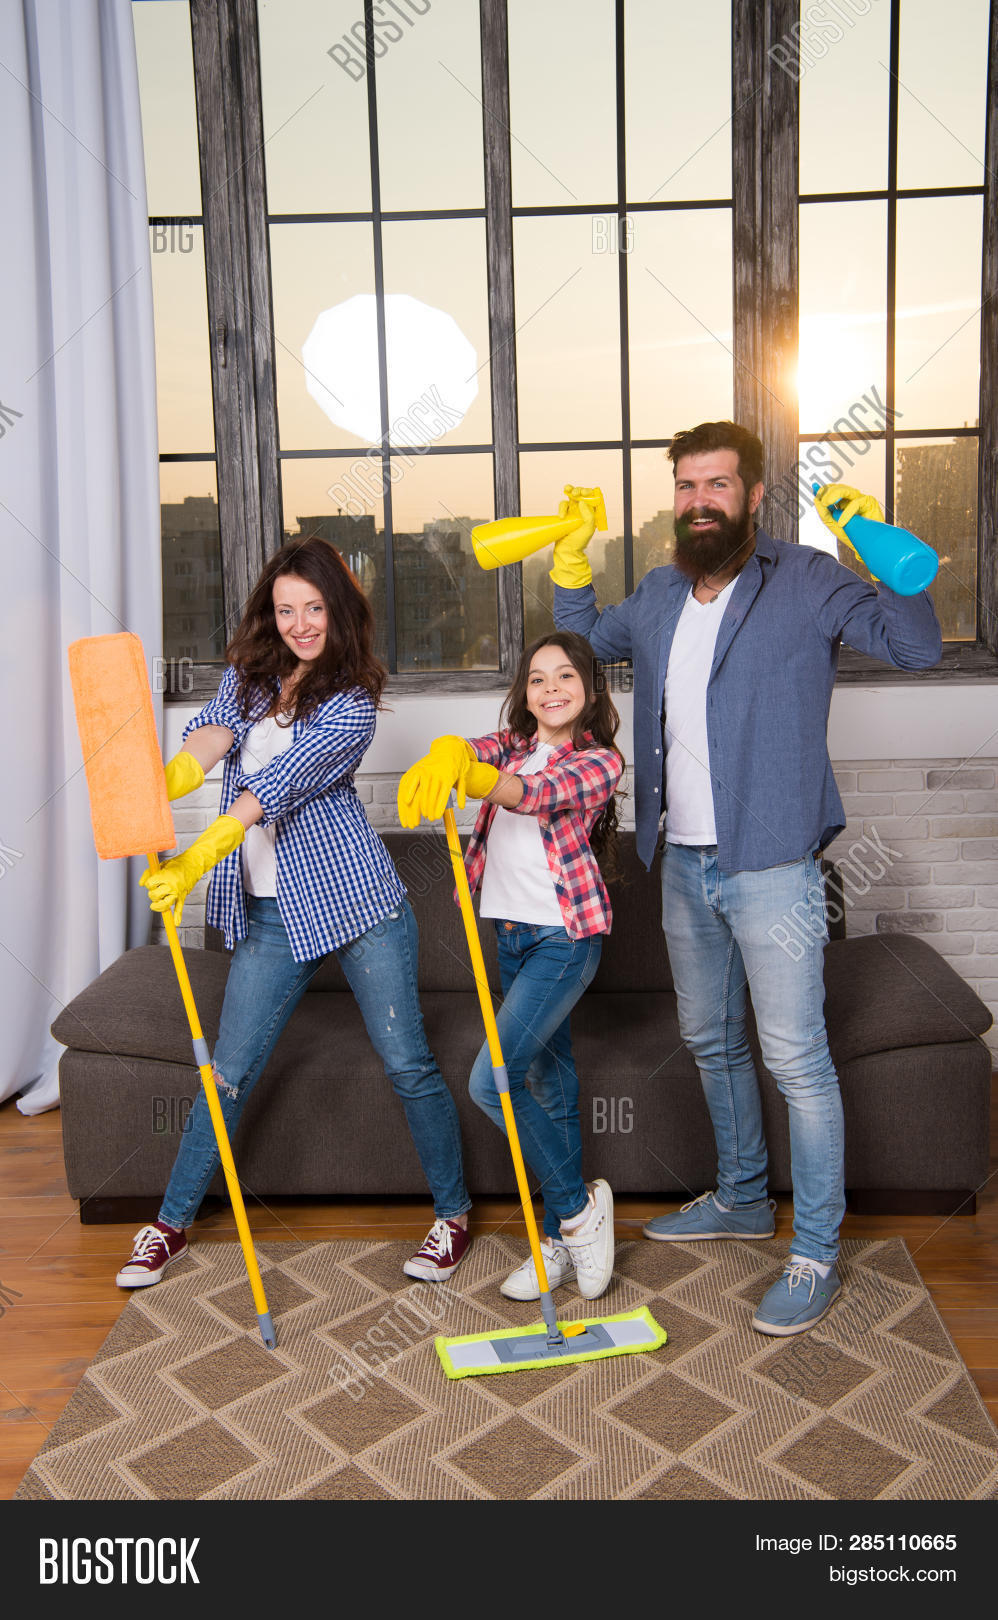 Family Mom Dad And Daughter With Cleaning Supplies At Living Room. We Love Cleanliness And Tidiness.